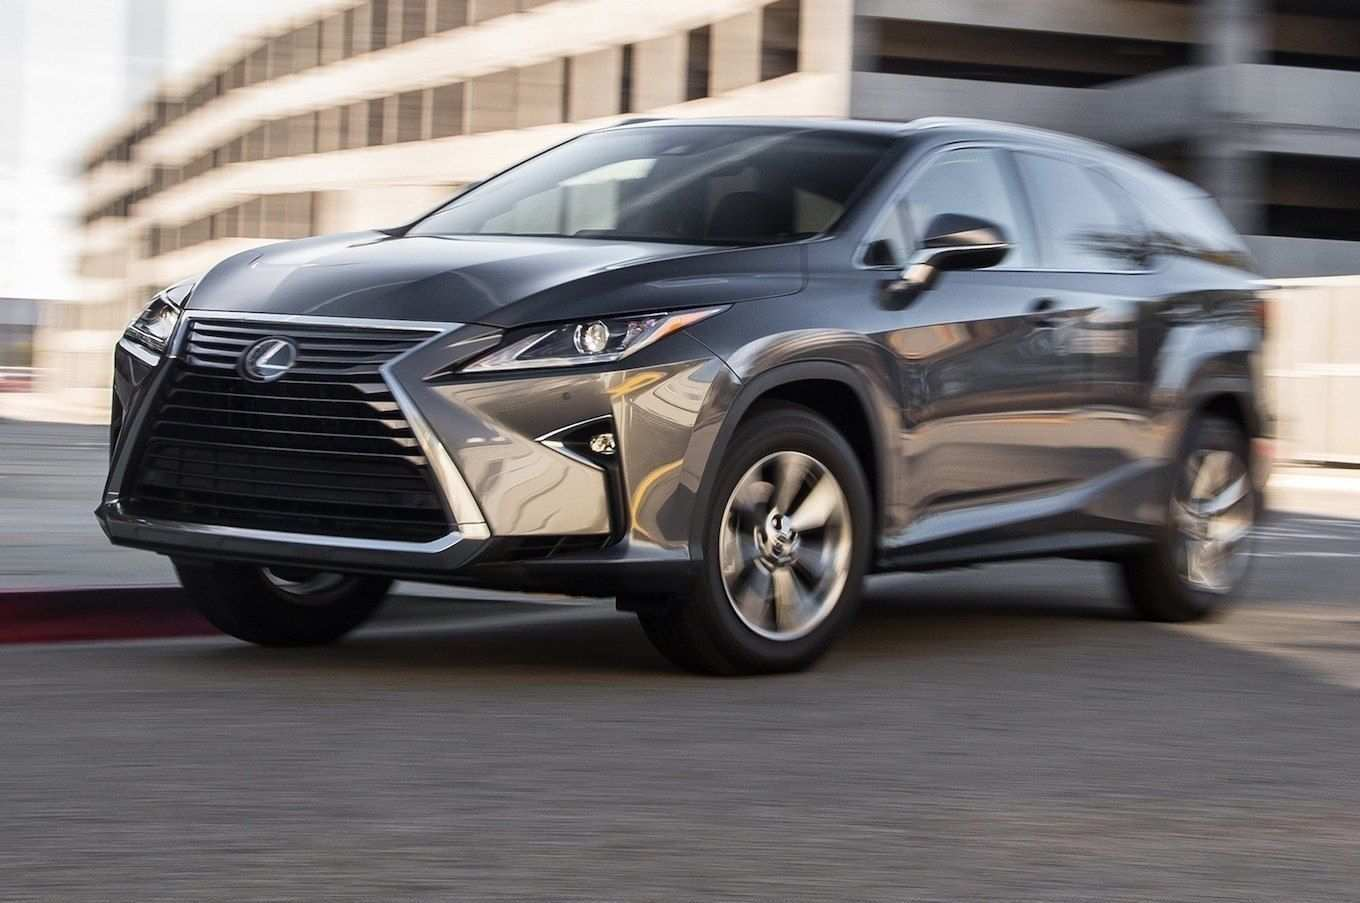 15 Great 2020 Lexus TX Specs and Review for 2020 Lexus TX